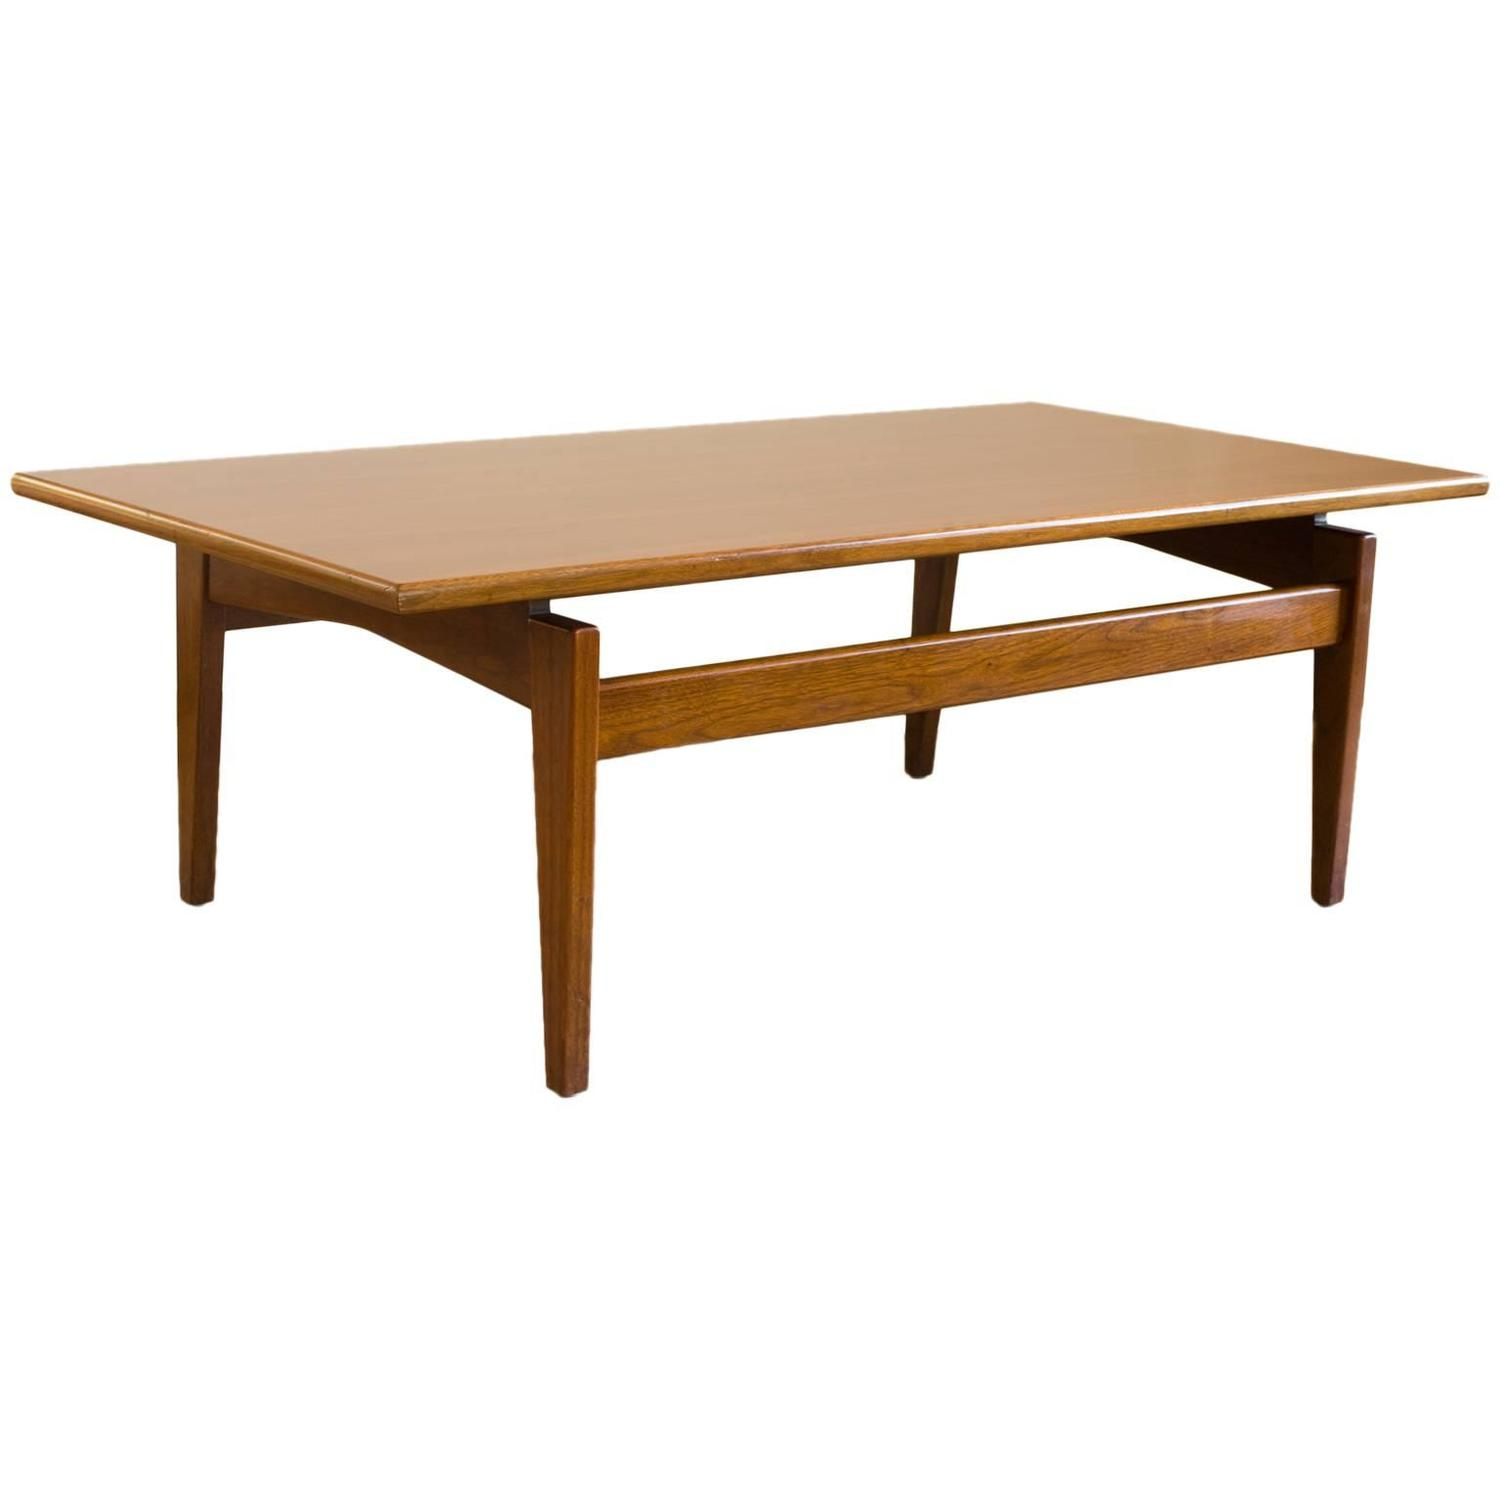 Jens risom floating bench for sale at 1stdibs - Jens Risom Walnut Floating Coffee Table With Sculptural Base At 1stdibs